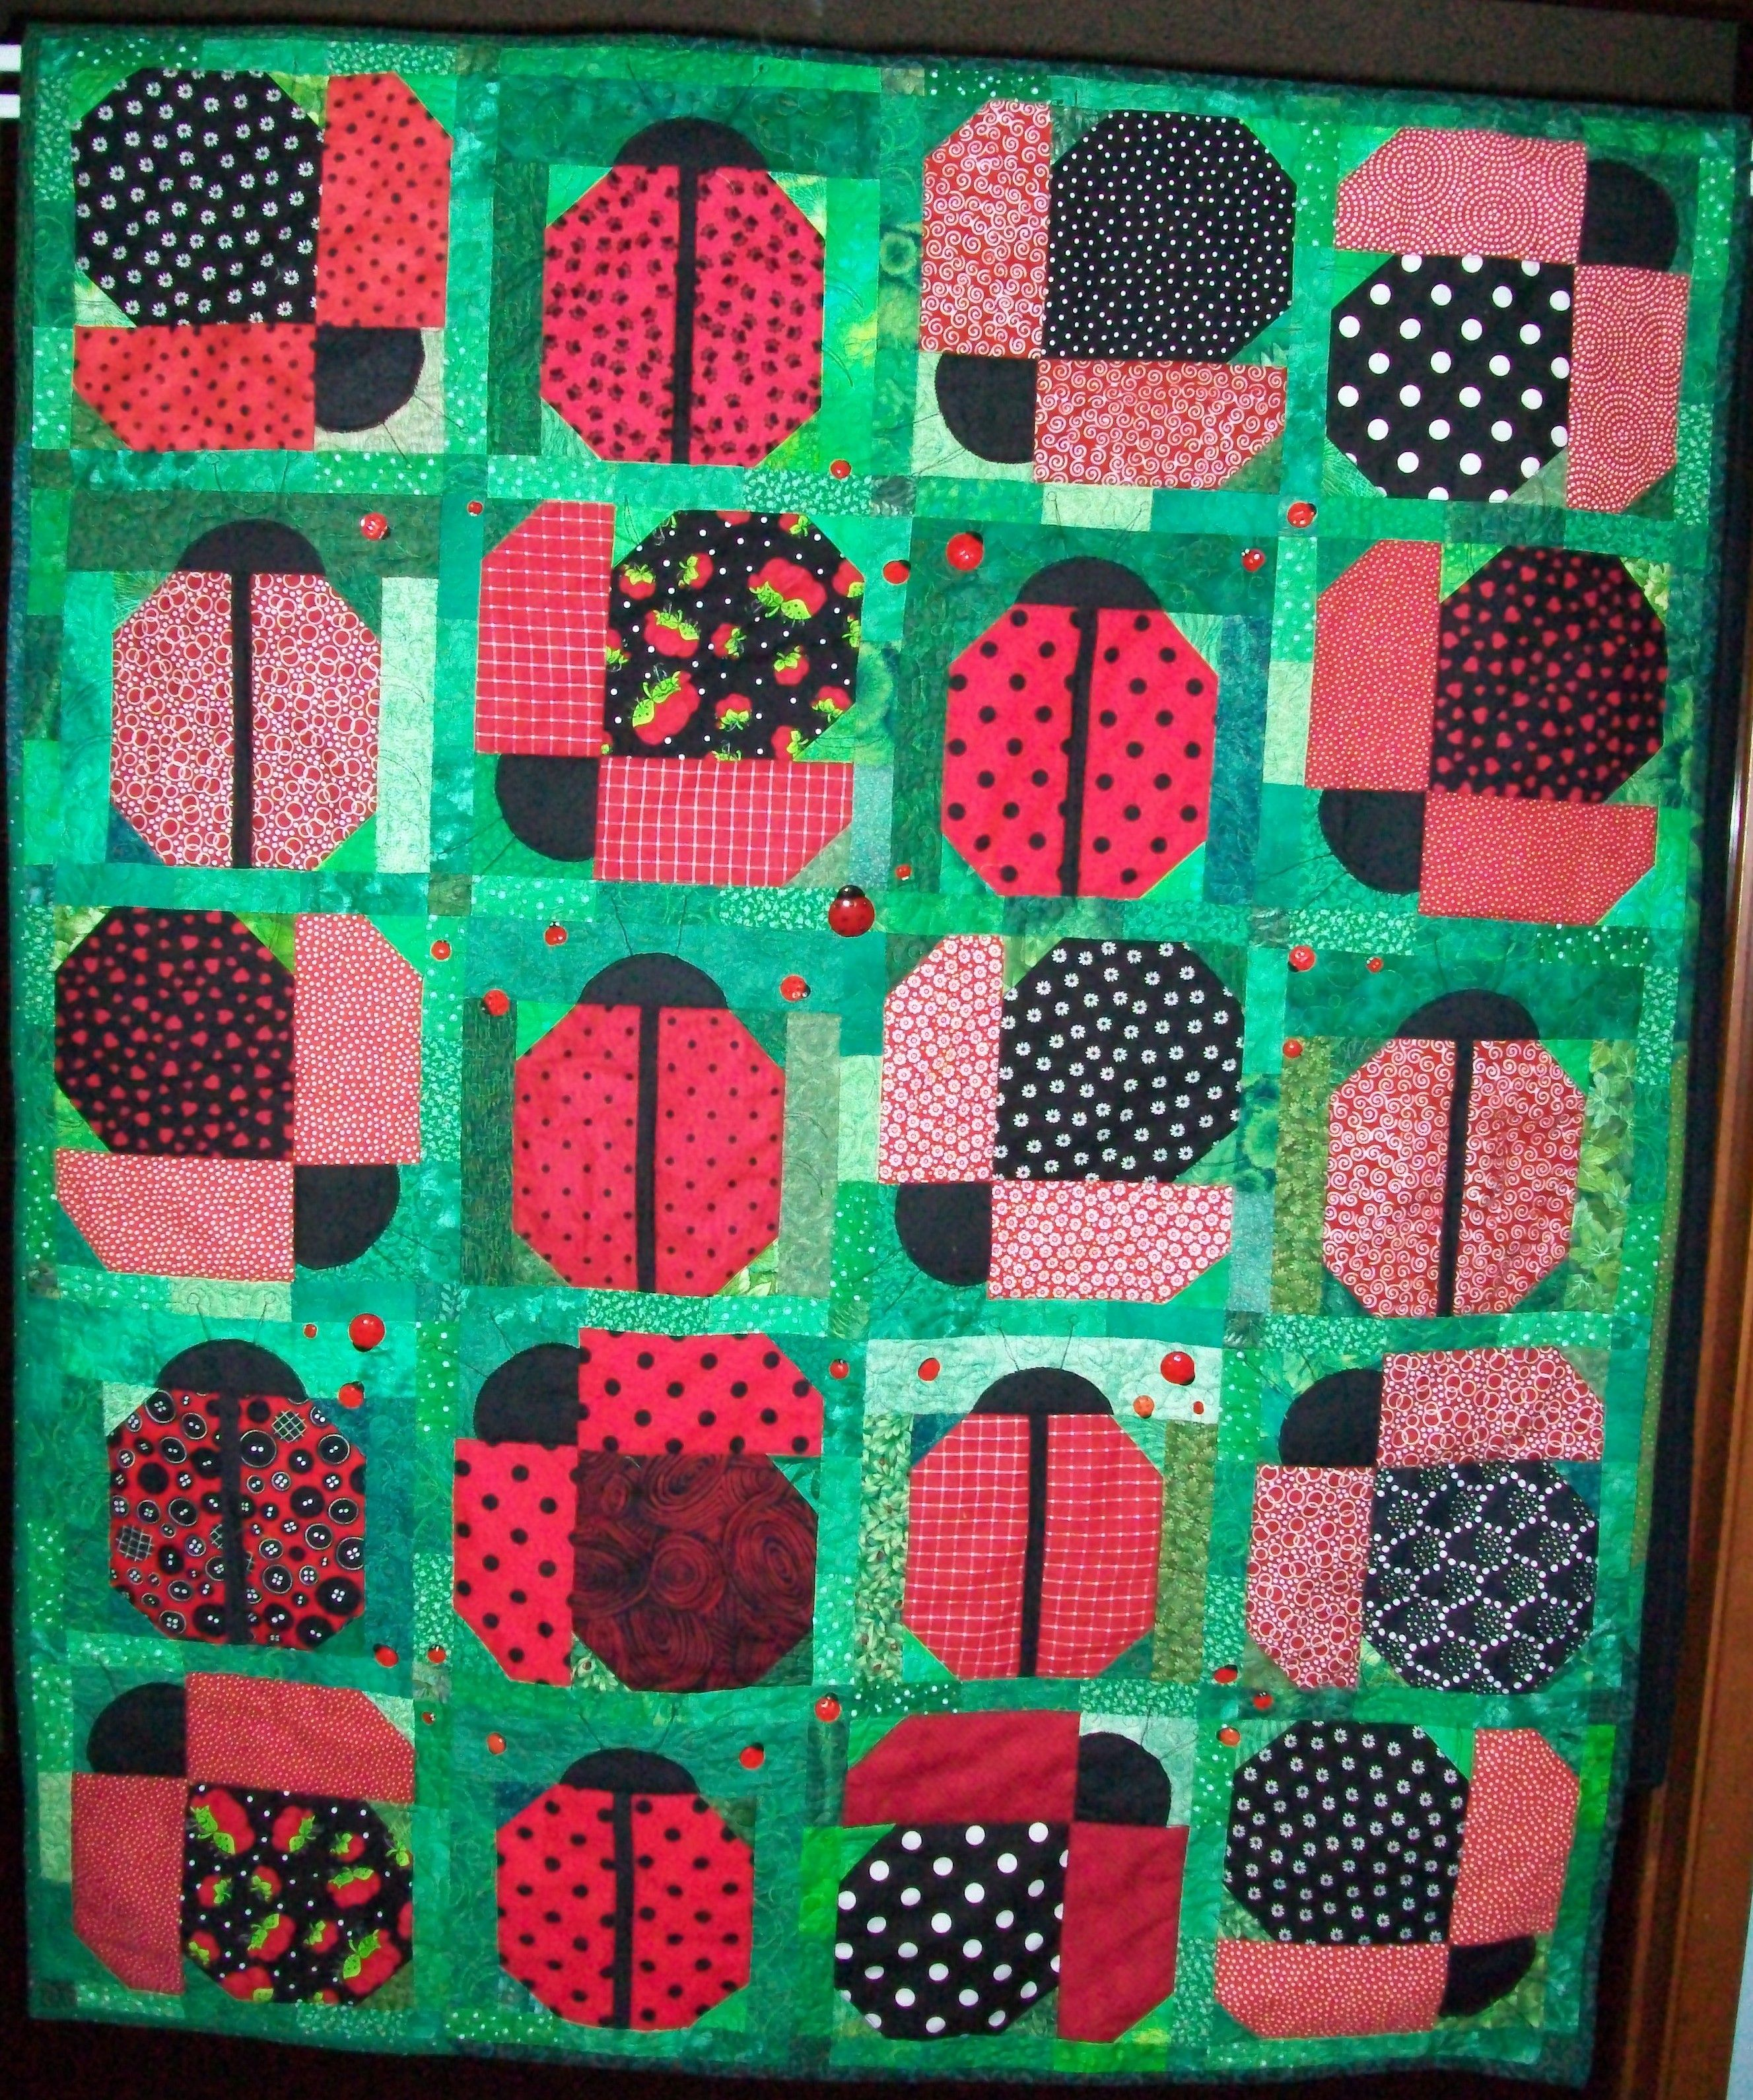 Quilt Blocks Lady Bugs | Quilts Finished 2010 | lady bugs ... : lady bug quilts - Adamdwight.com